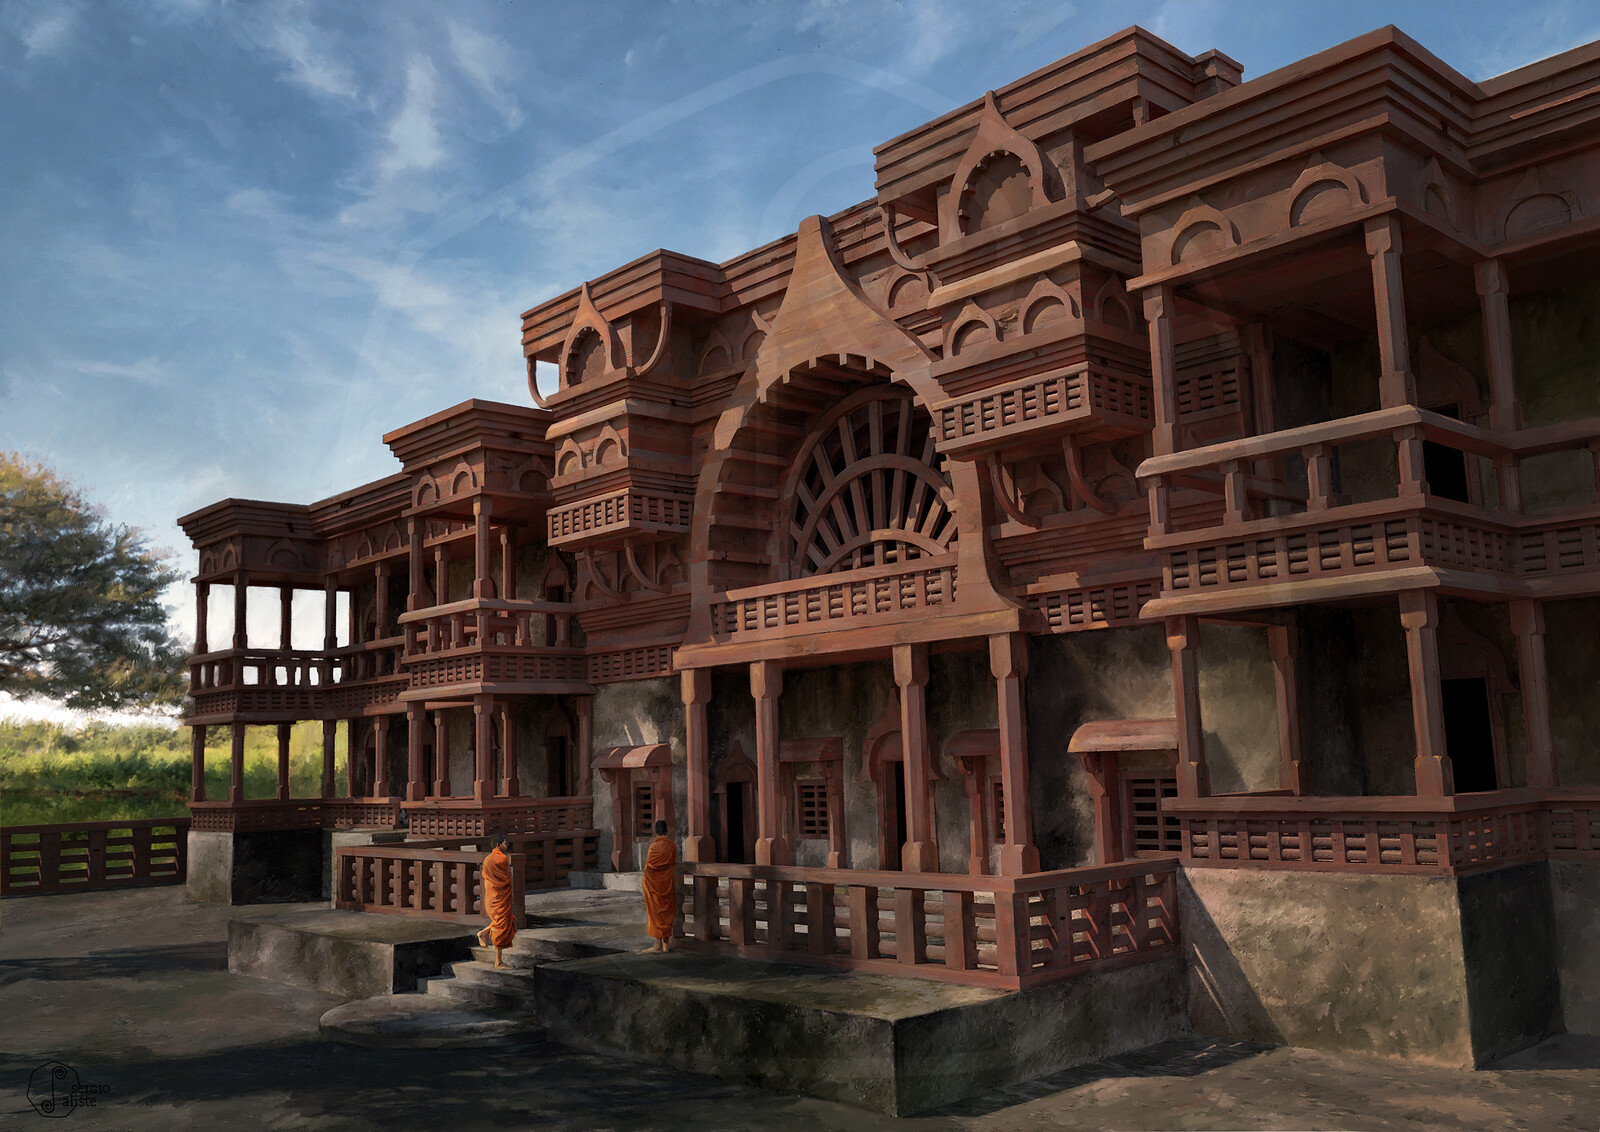 Hypothetical reconstruction of a wooden Buddhist temple